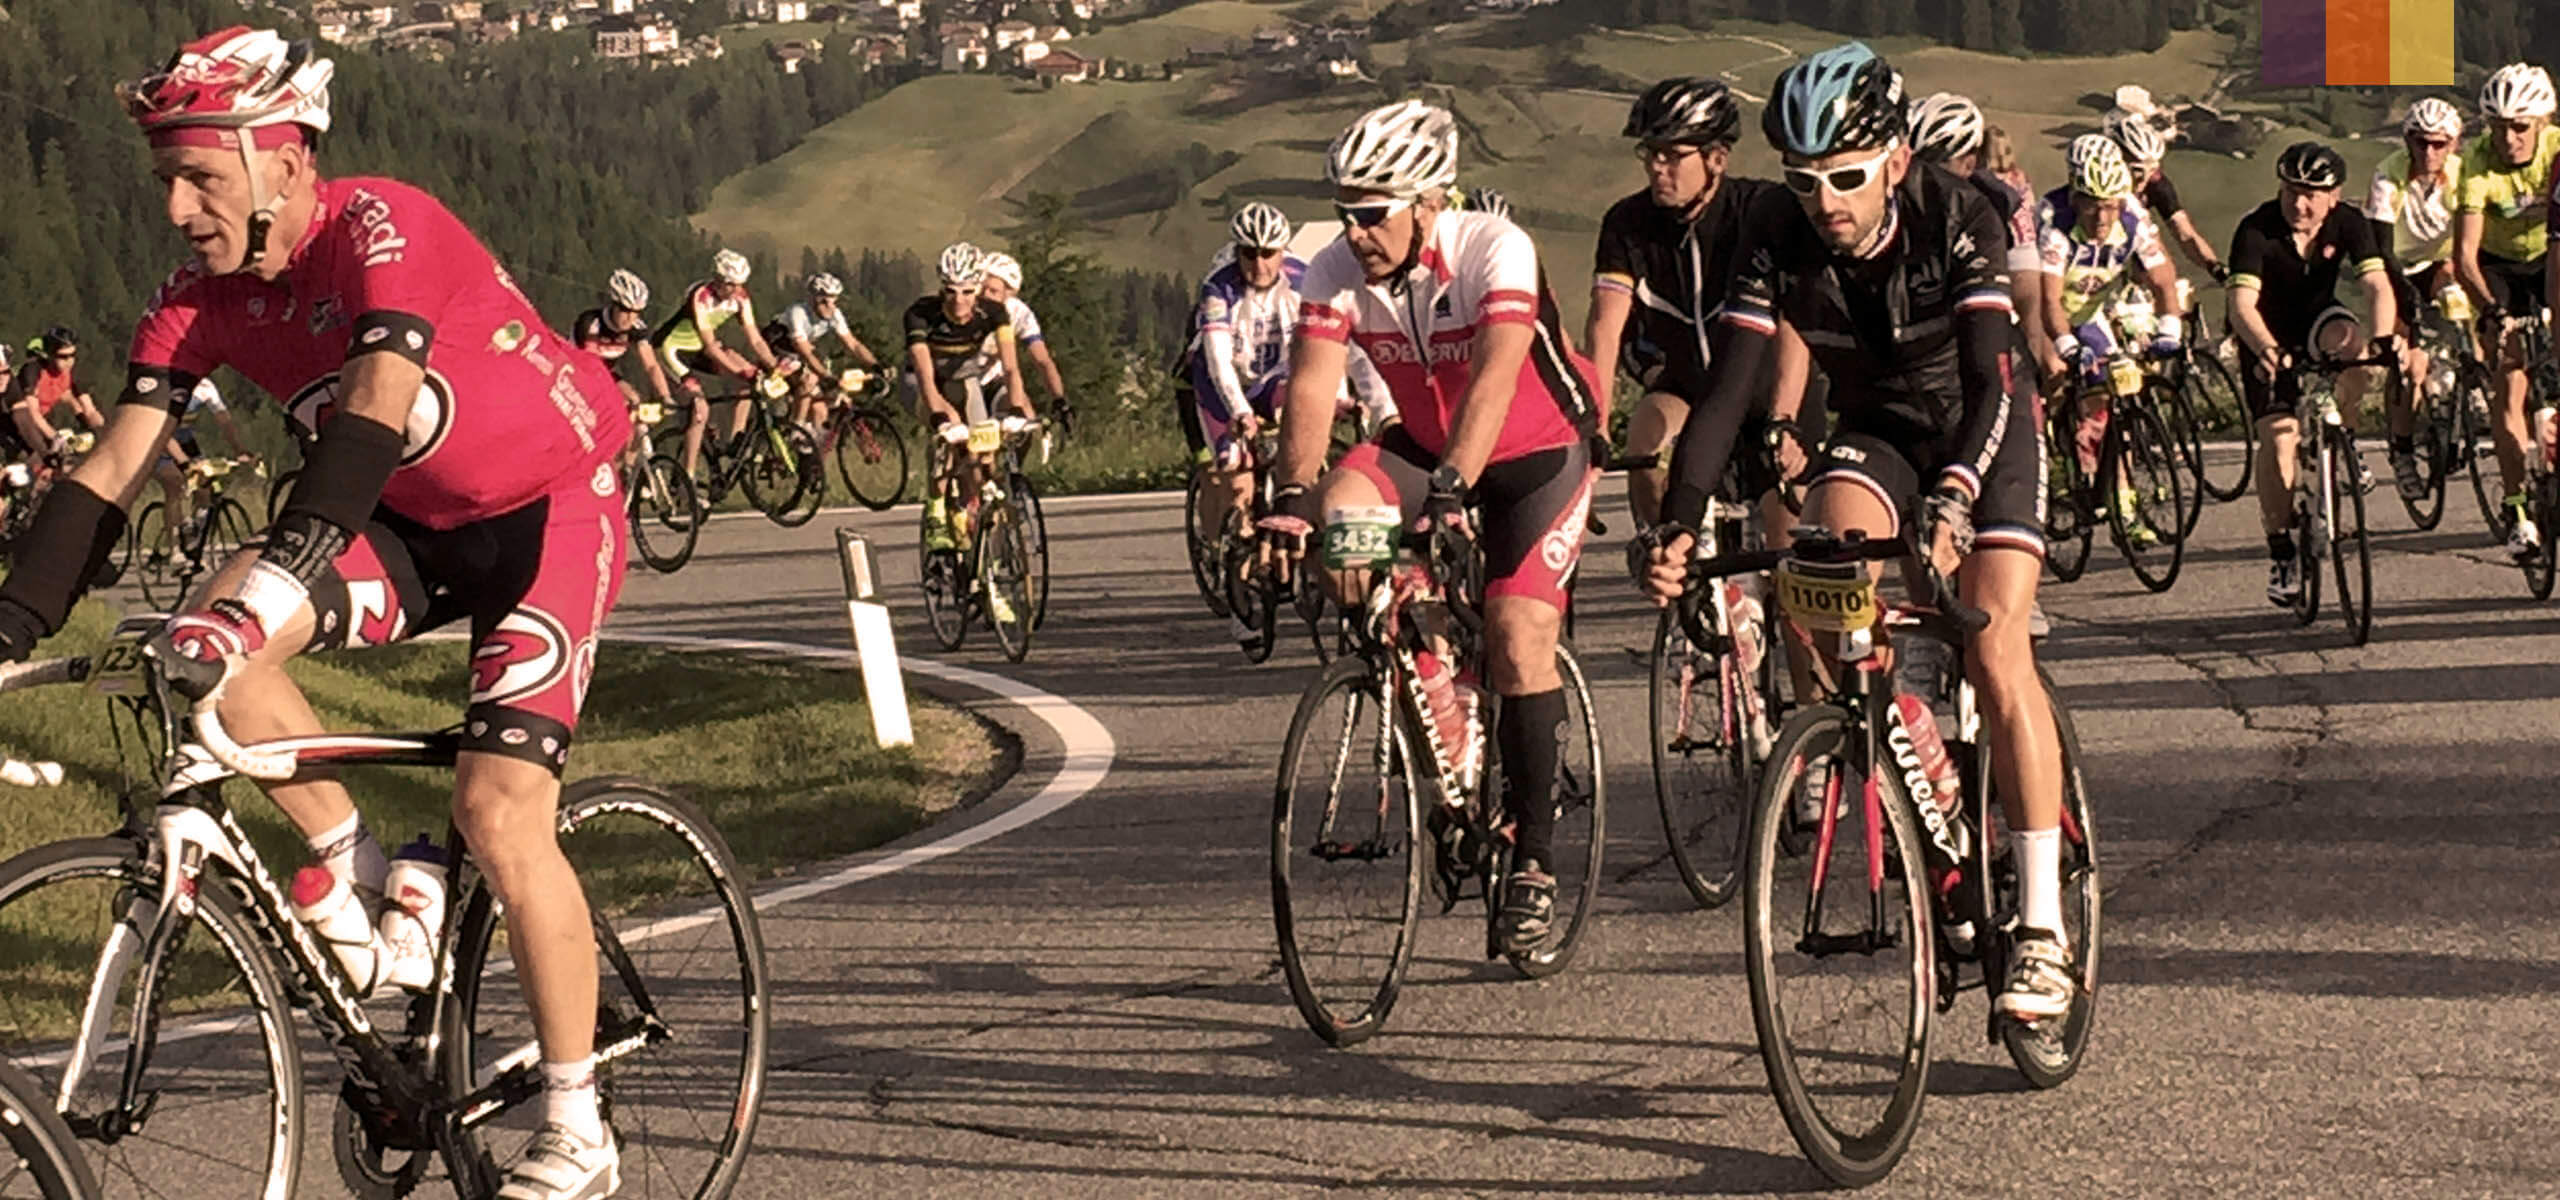 Riding the epic Maratona!